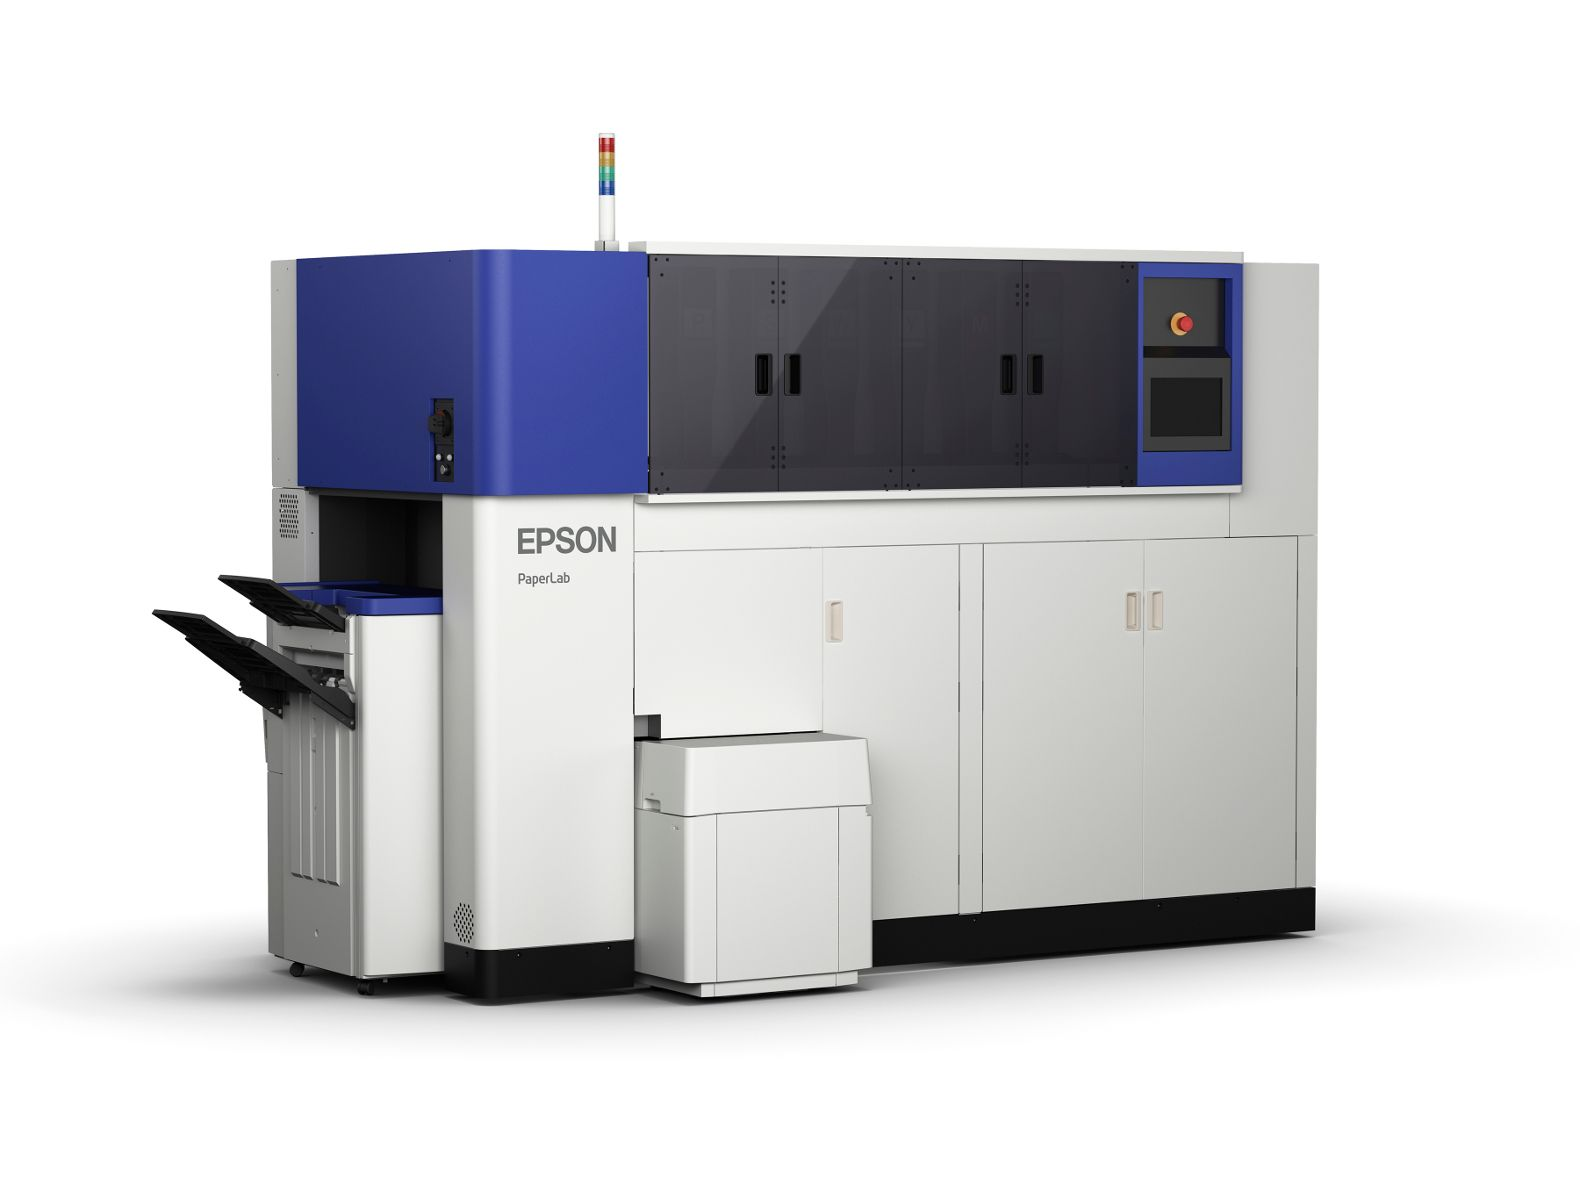 Epson\'s PaperLab can recycle 6,720 sheets of paper in a single workday